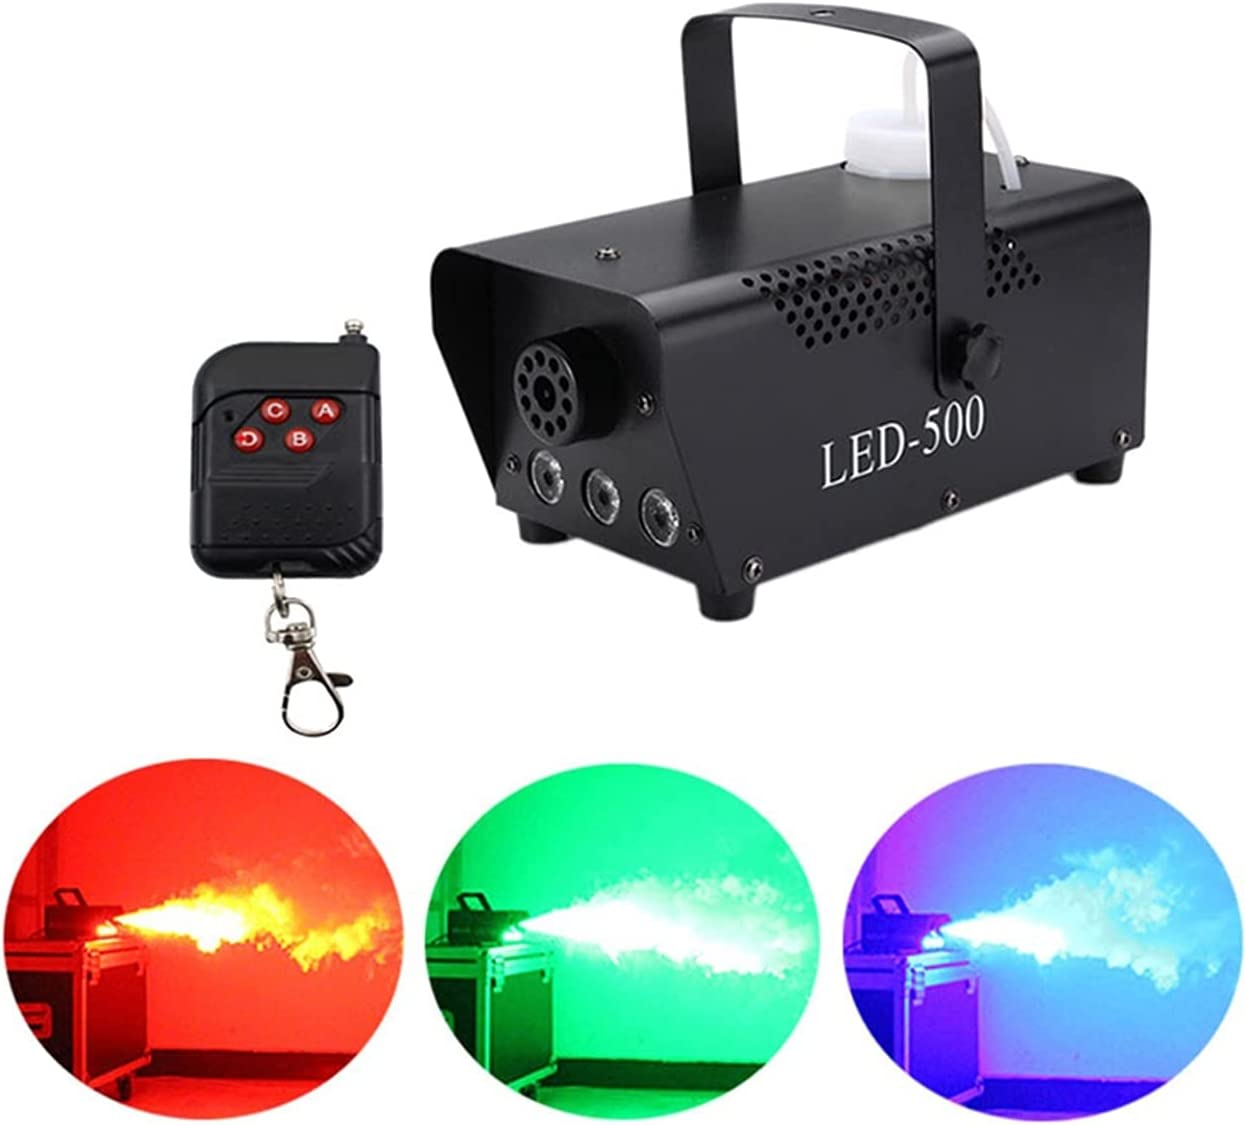 Fog Machine Large-scale sale Portable with Lights for Cheap super special price Color Halloween